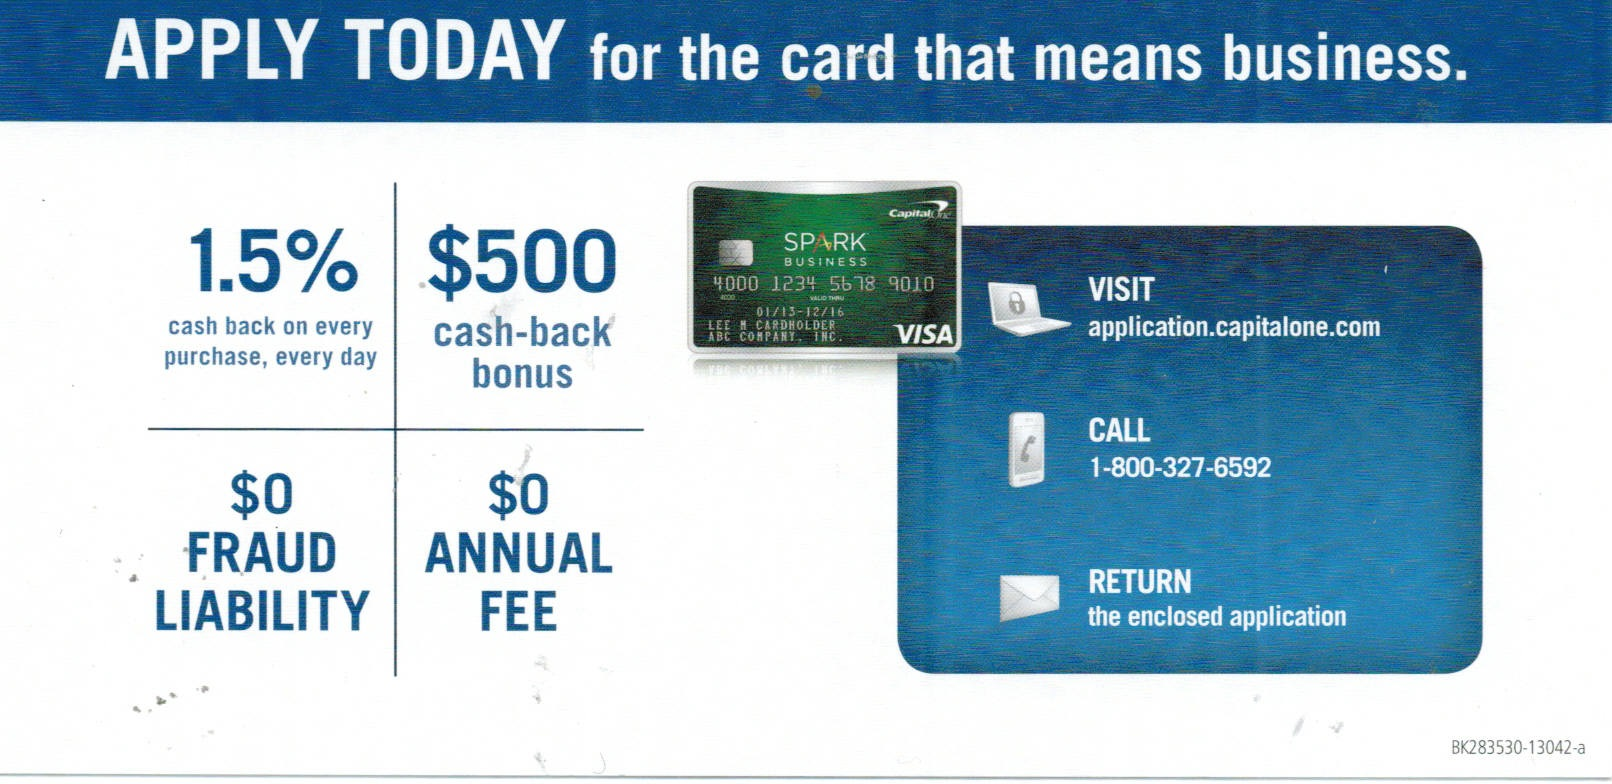 Capital one Spark card, best one yet for cash back... - myFICO ...